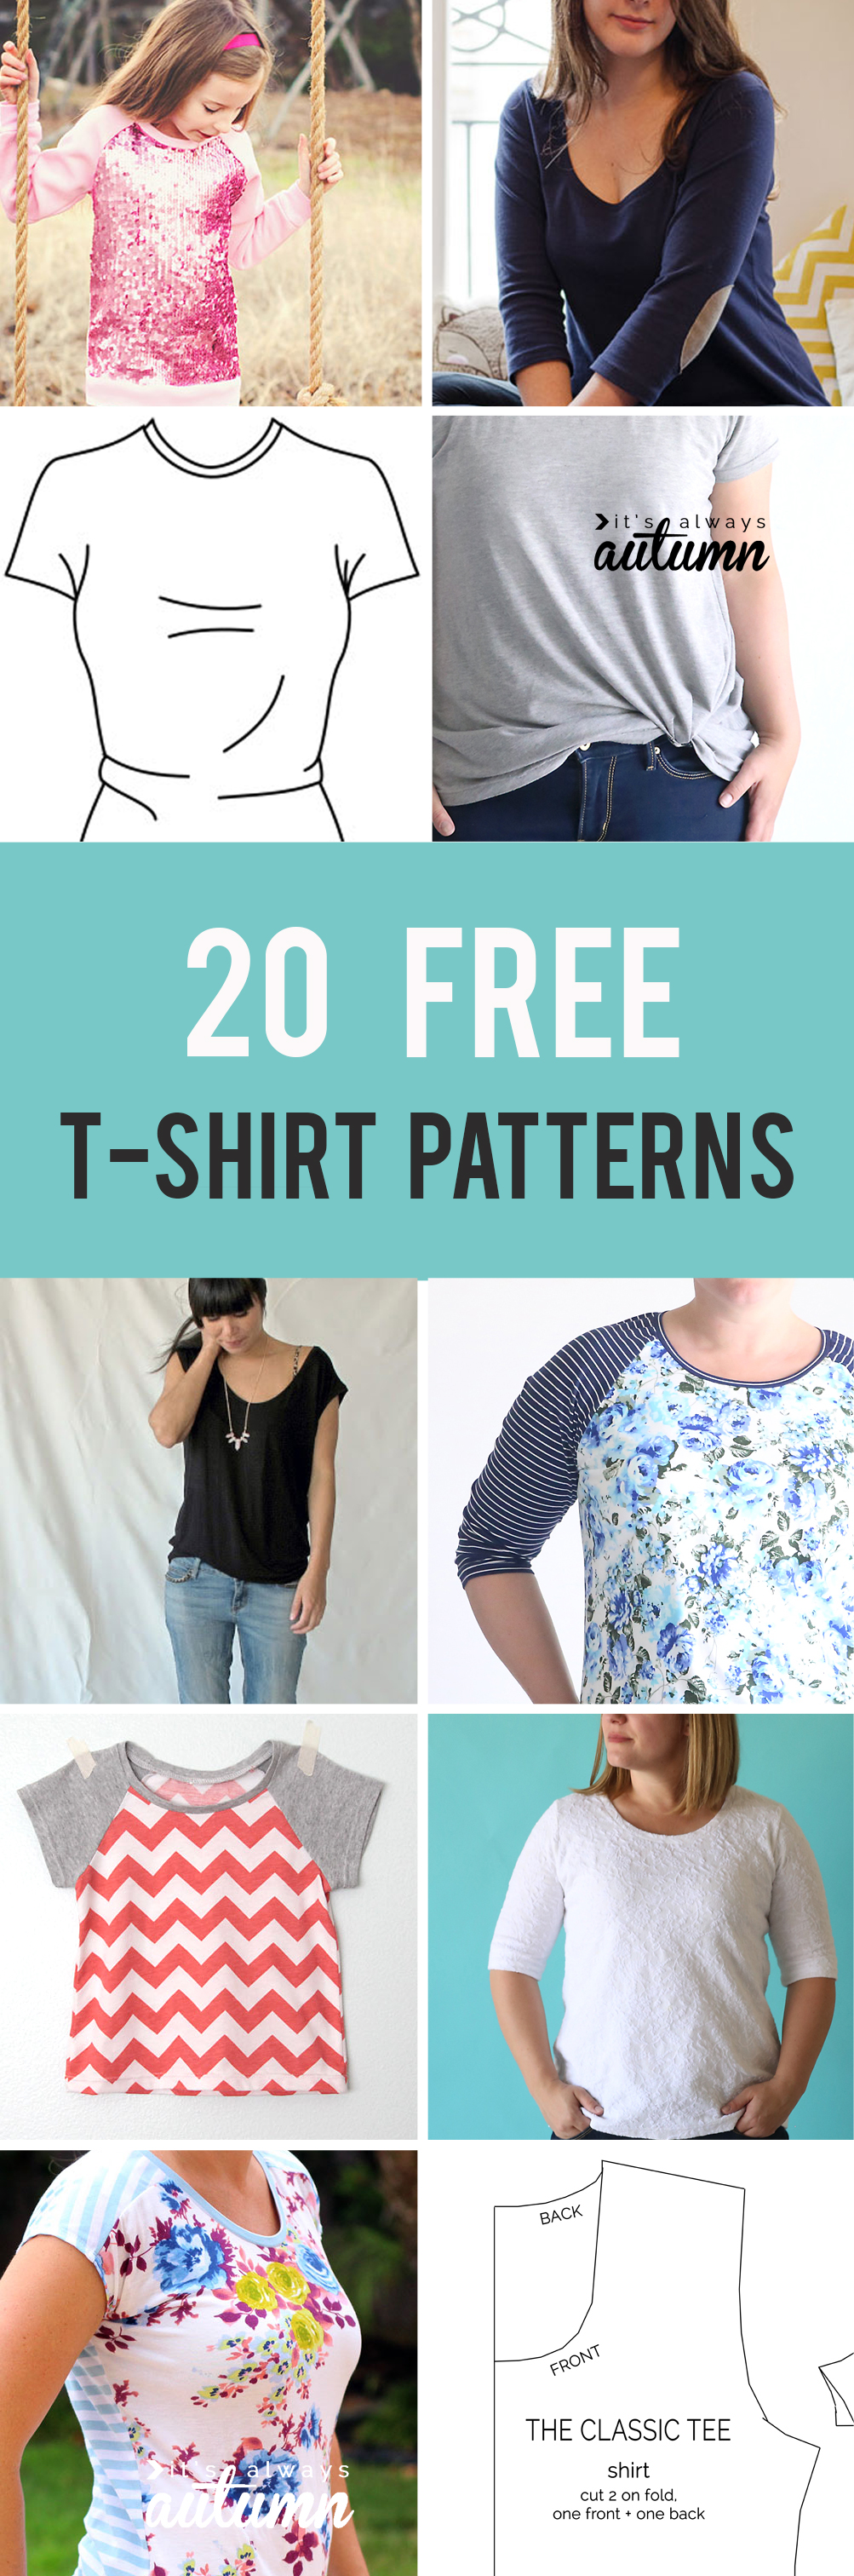 df4edd96 20 free t-shirt patterns you can print + sew at home - It's Always ...